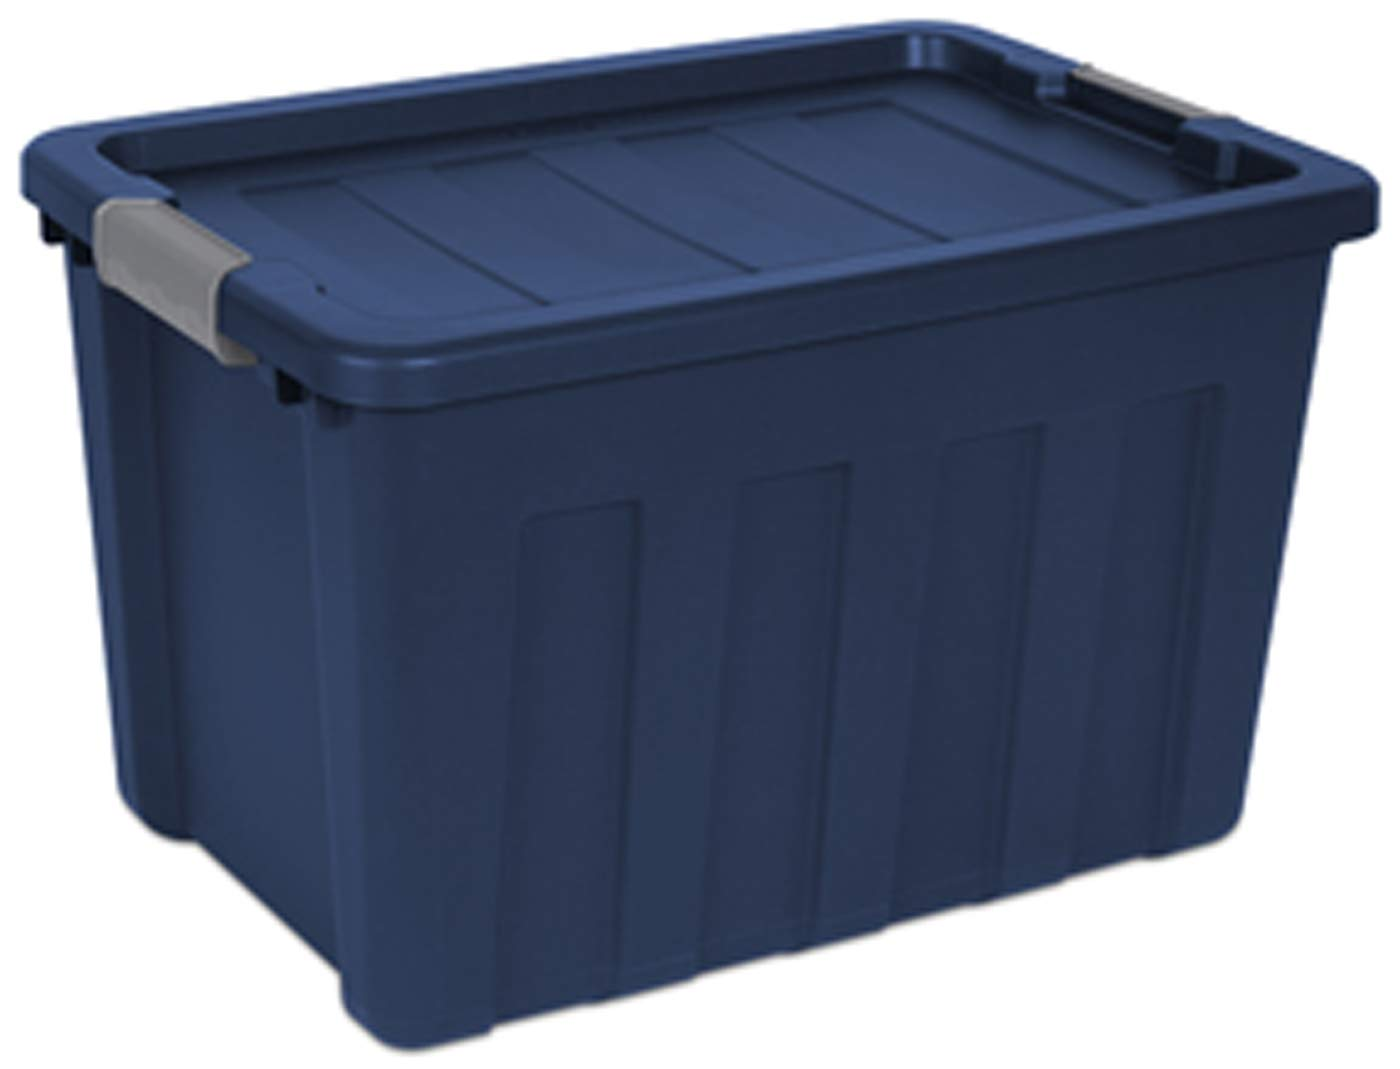 K&A Company Storage Container - 25 Gallon, 17'' x 18.75'' x 68 lbs